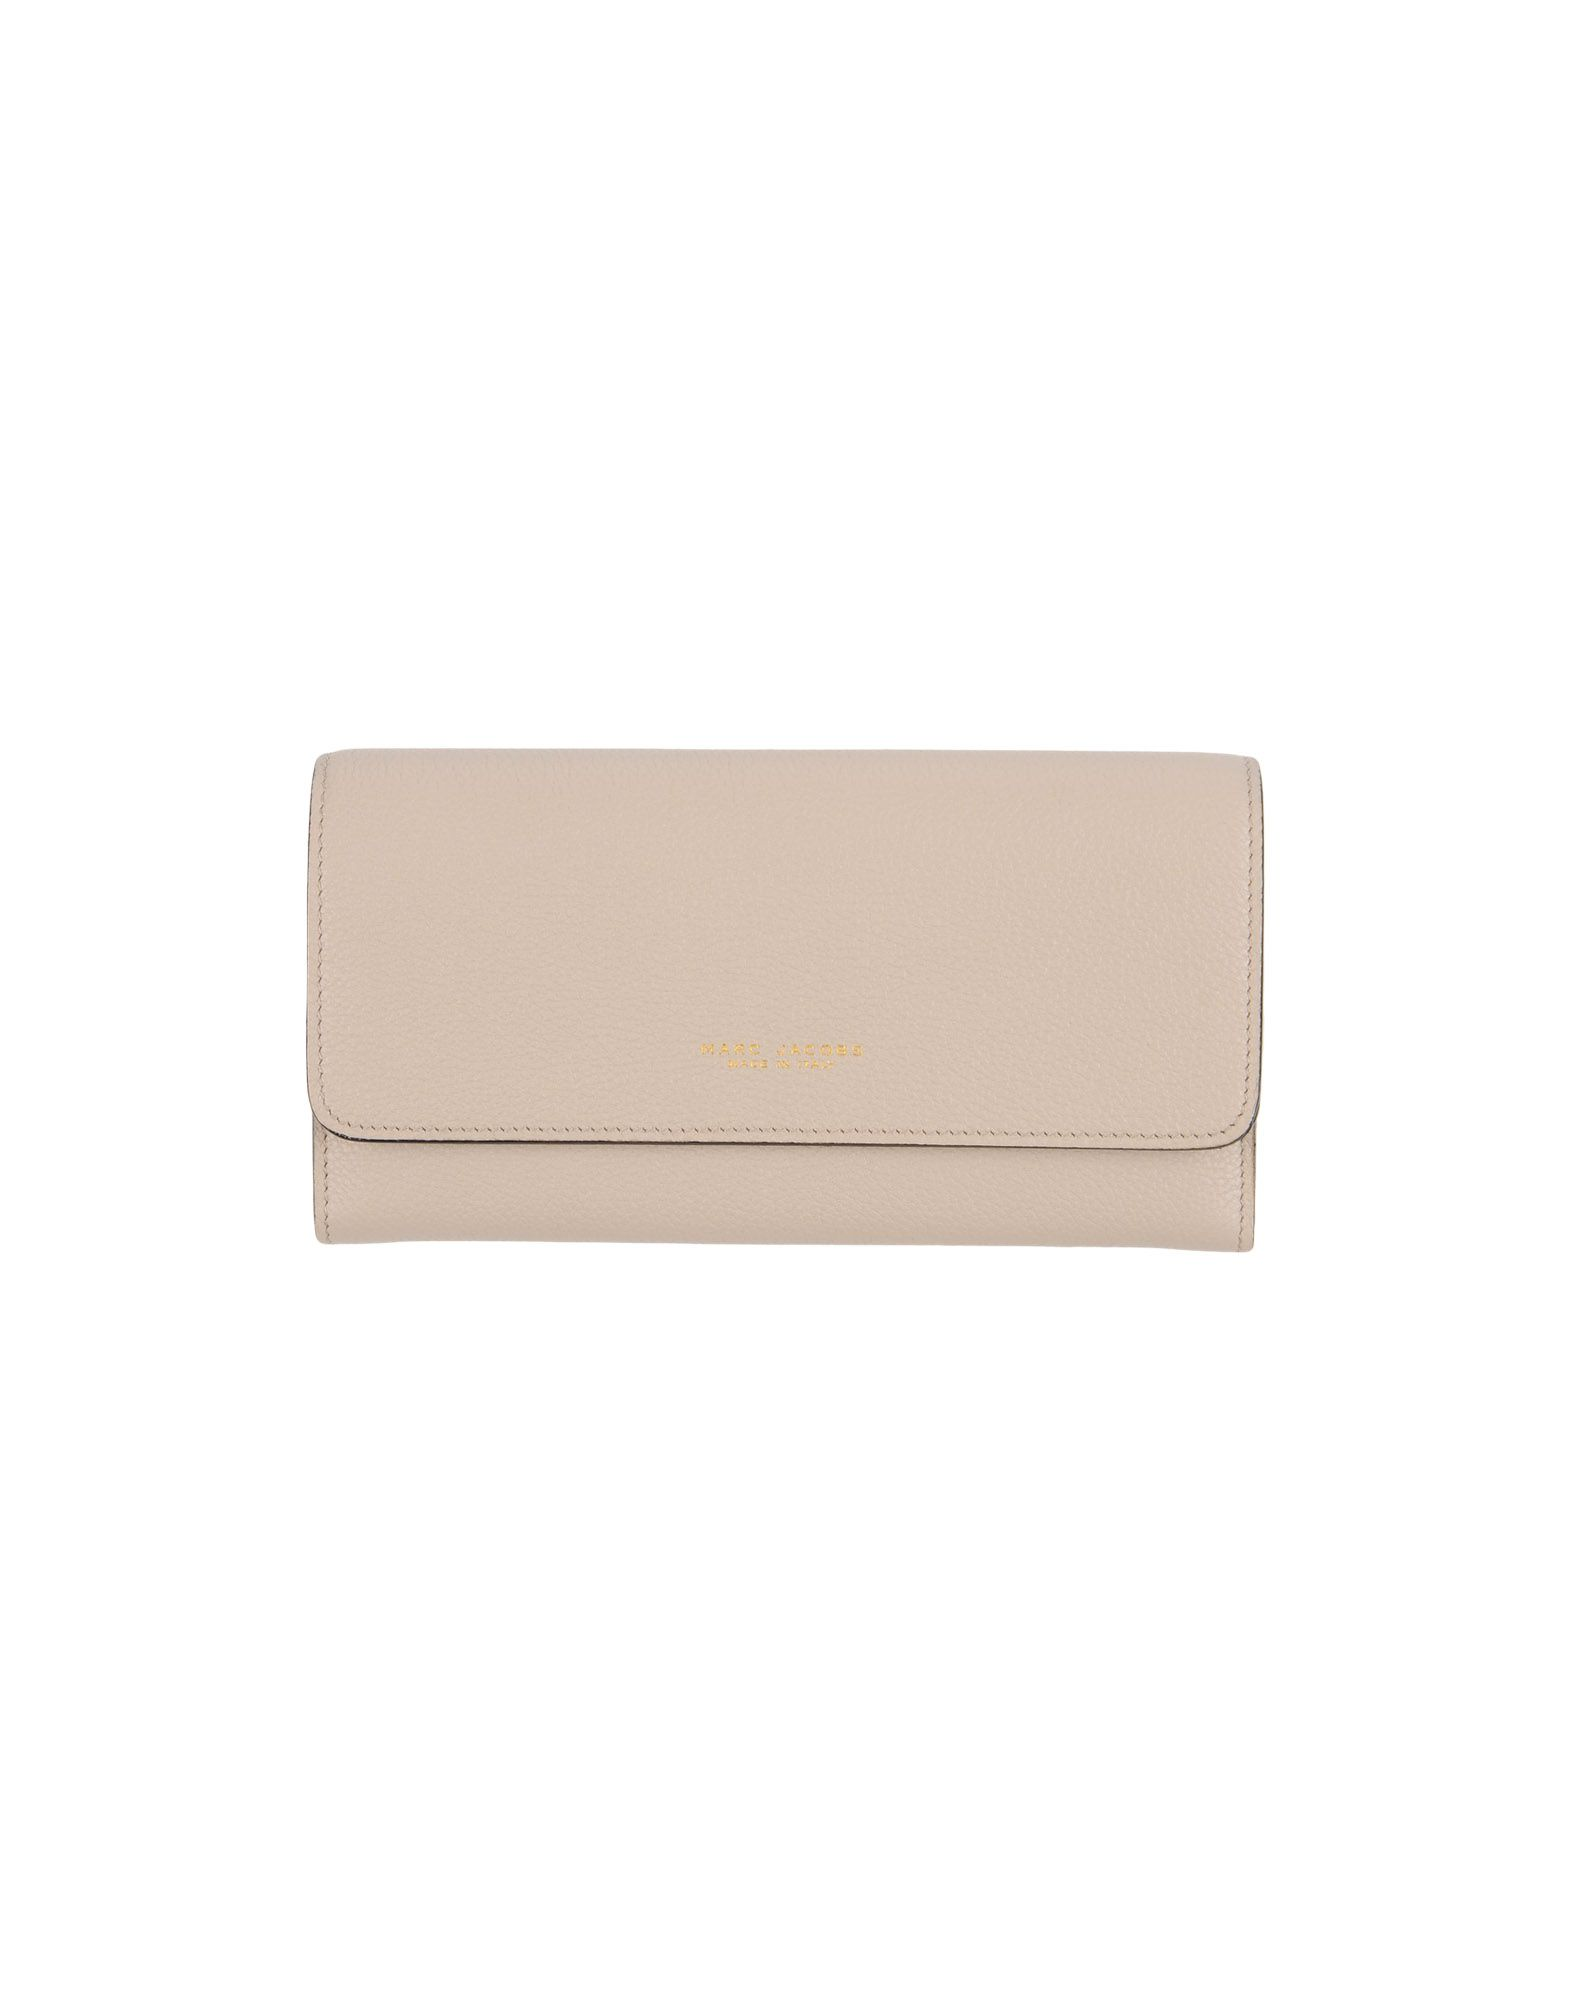 marc jacobs female marc jacobs wallets